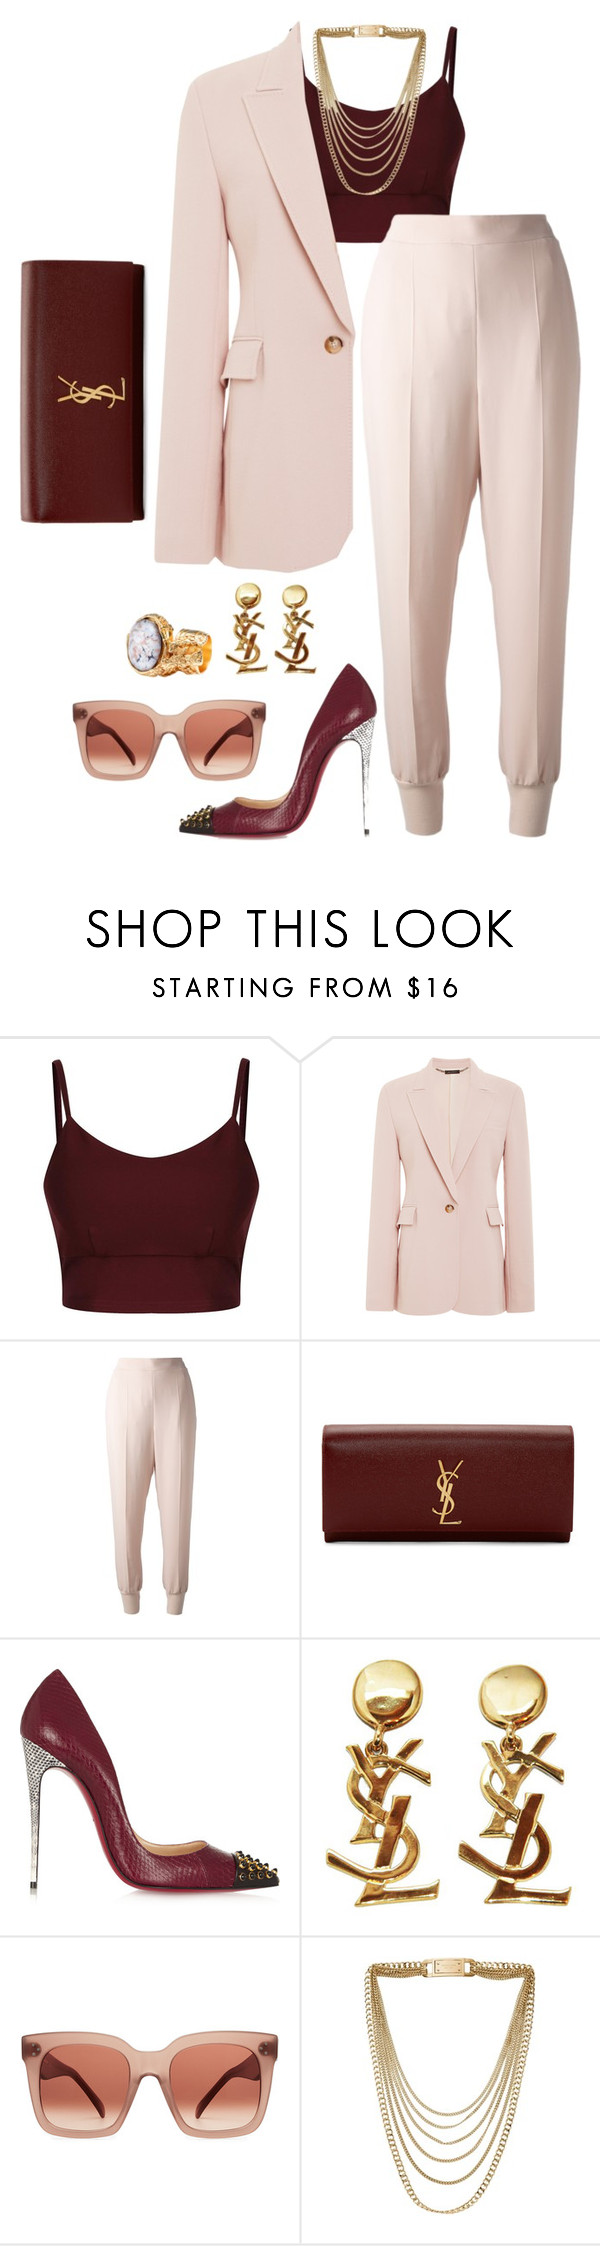 """""""Dressed  For Success"""" by fashionkill21 ❤ liked on Polyvore featuring Wes Gordon, STELLA McCARTNEY, Yves Saint Laurent, Christian Louboutin, CÉLINE and Michael Kors"""